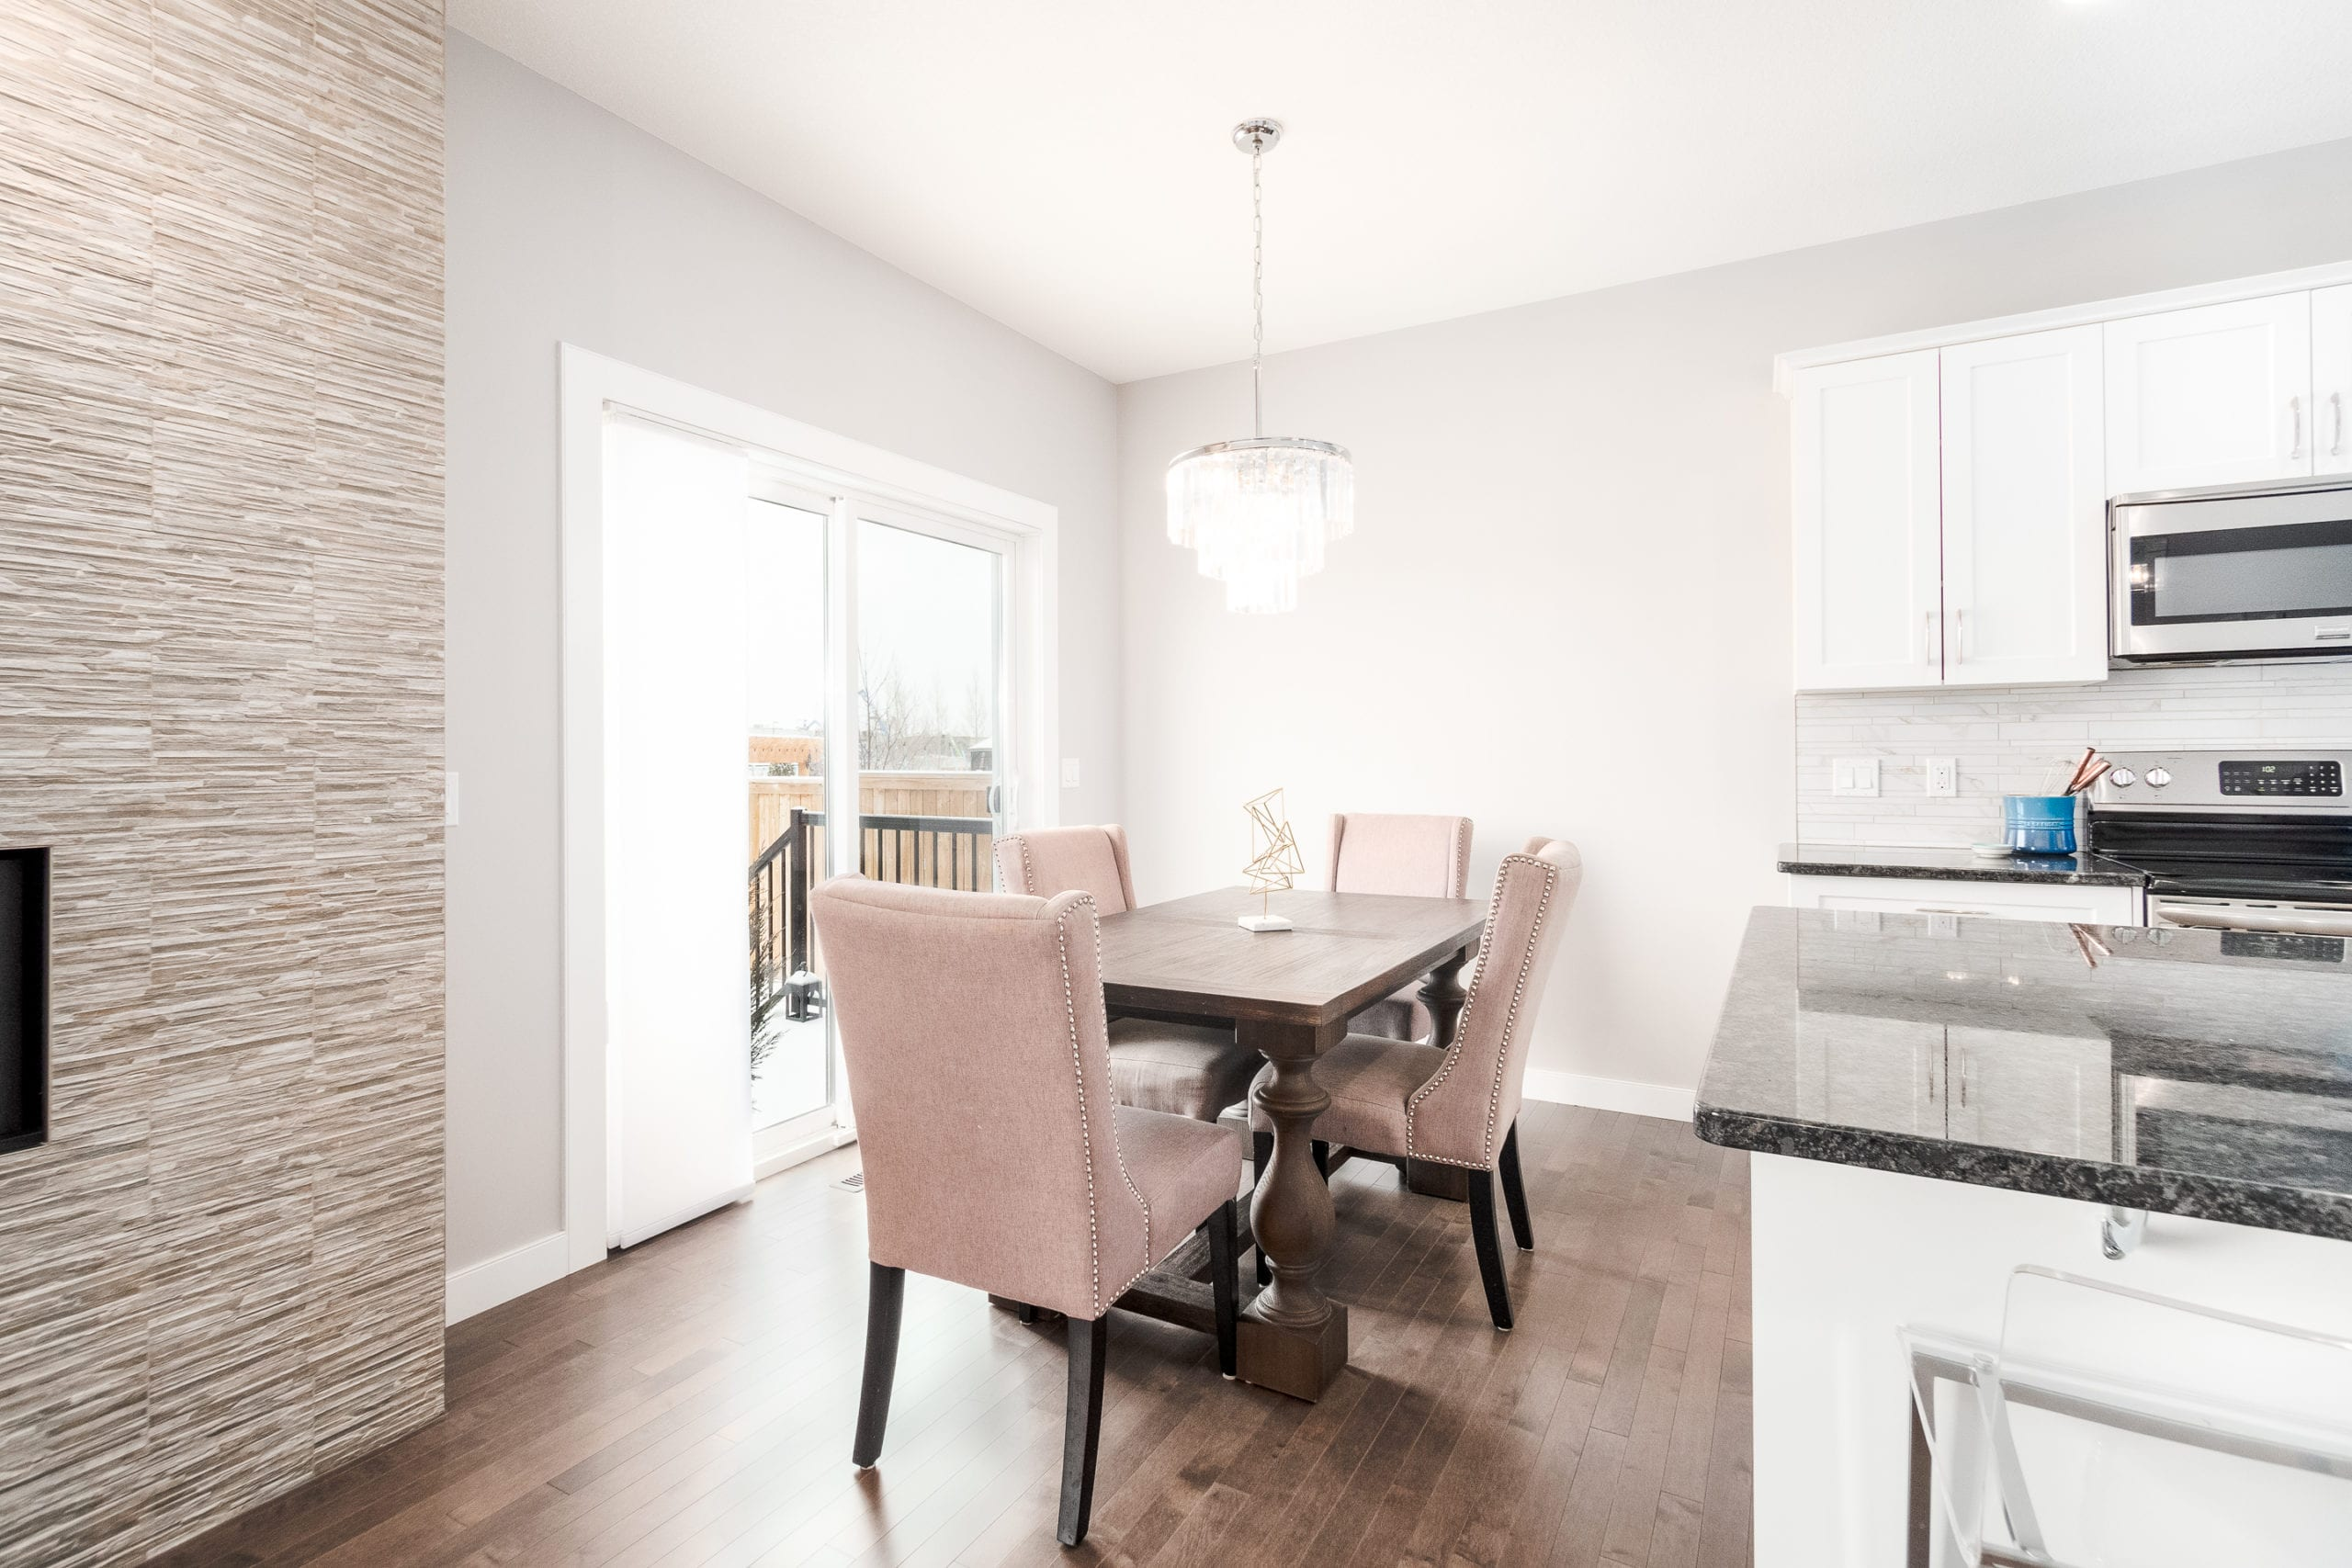 Hello Gorgeous - 1306 Kings Heights Way SE, Airdrie AB. - Tara Molina Real Estate (7 of 53)